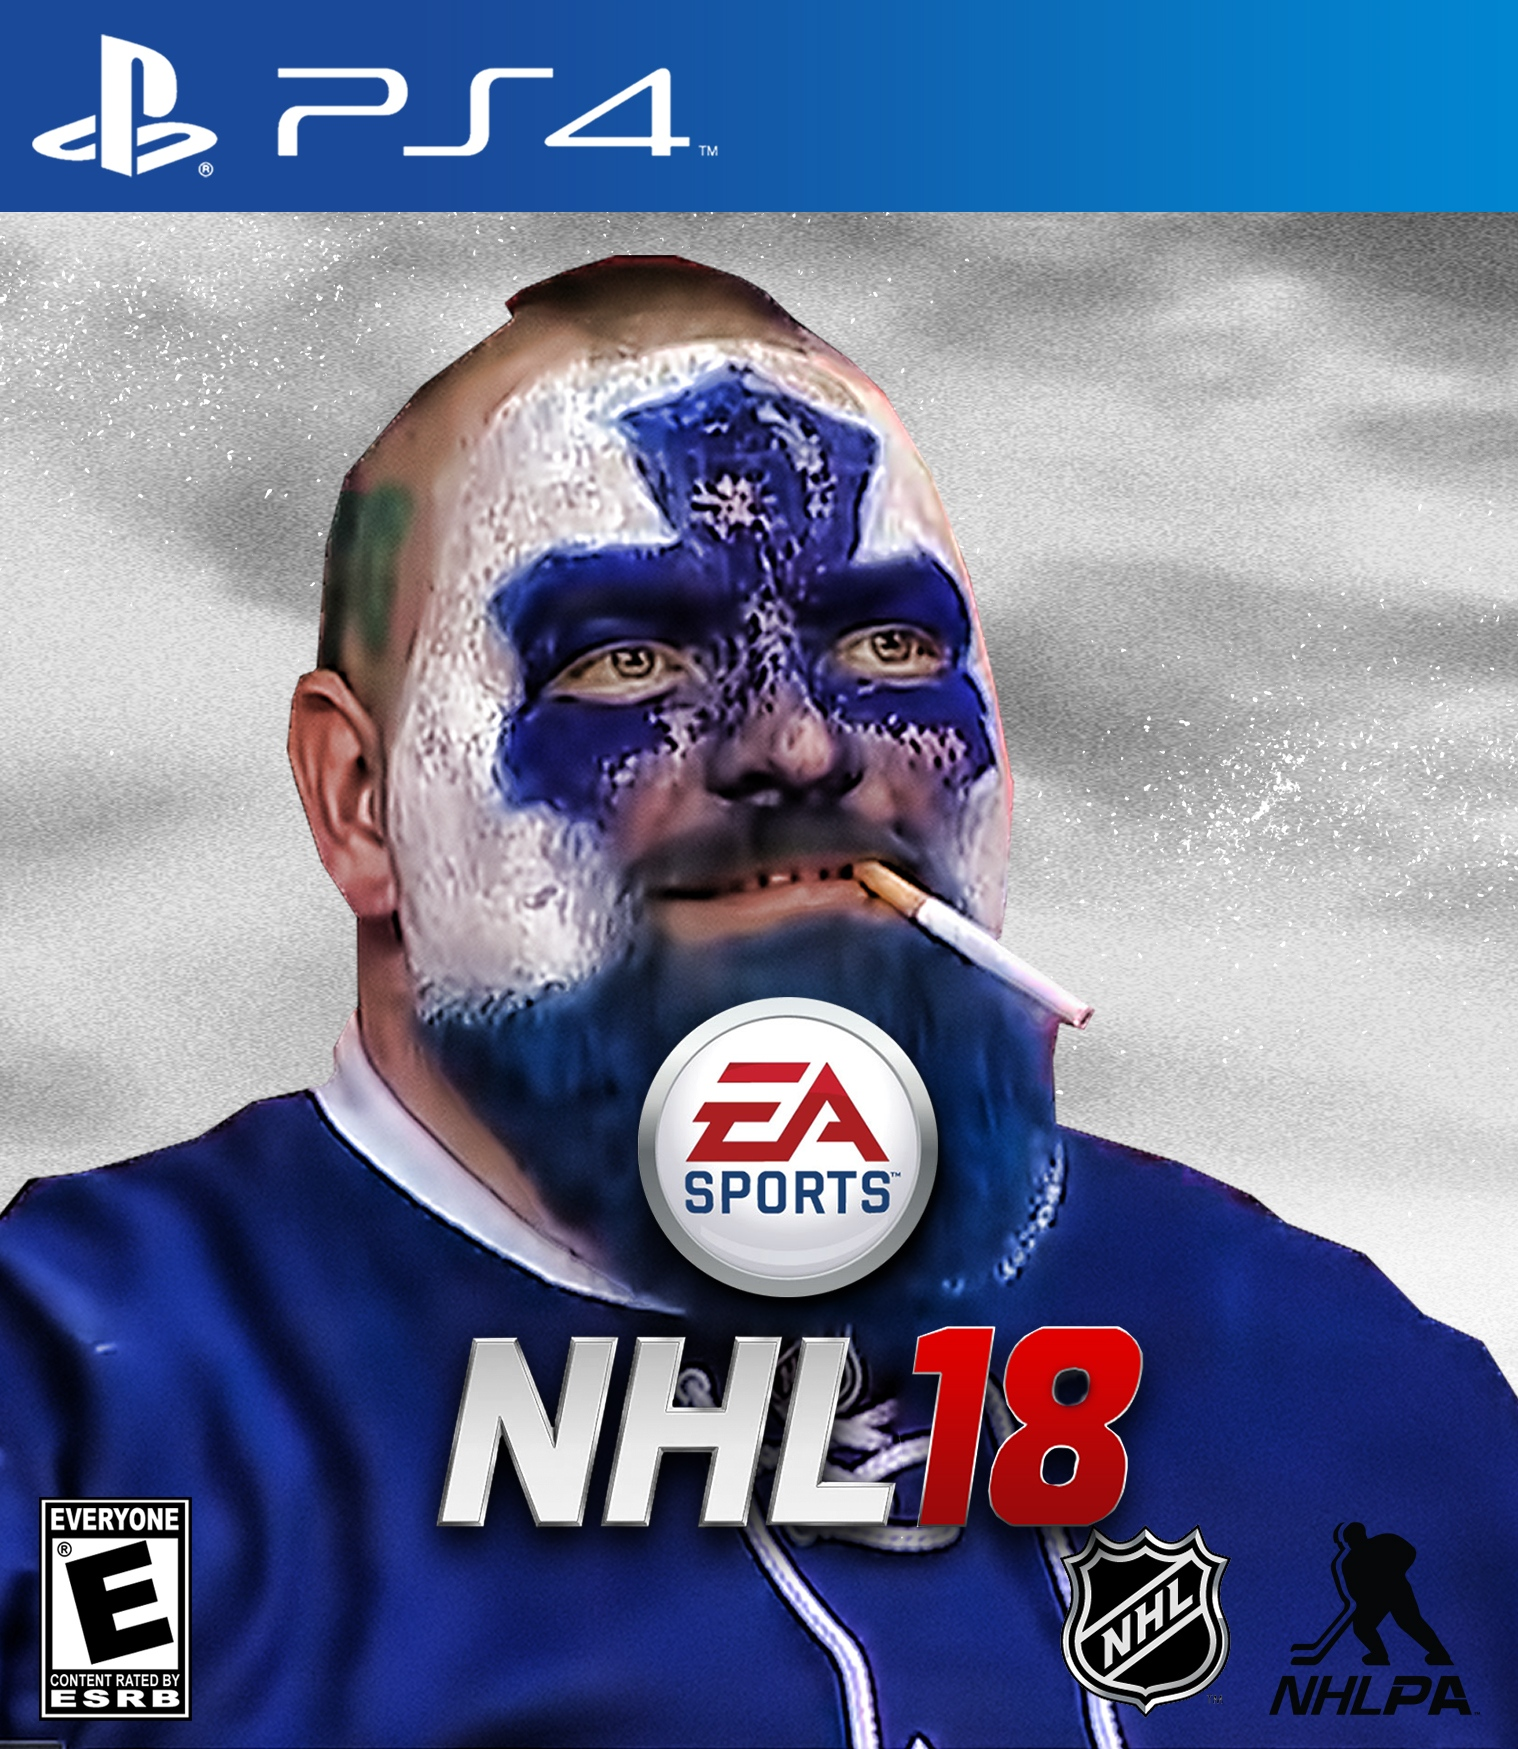 8 players that deserve consideration to be on the cover of NHL 18